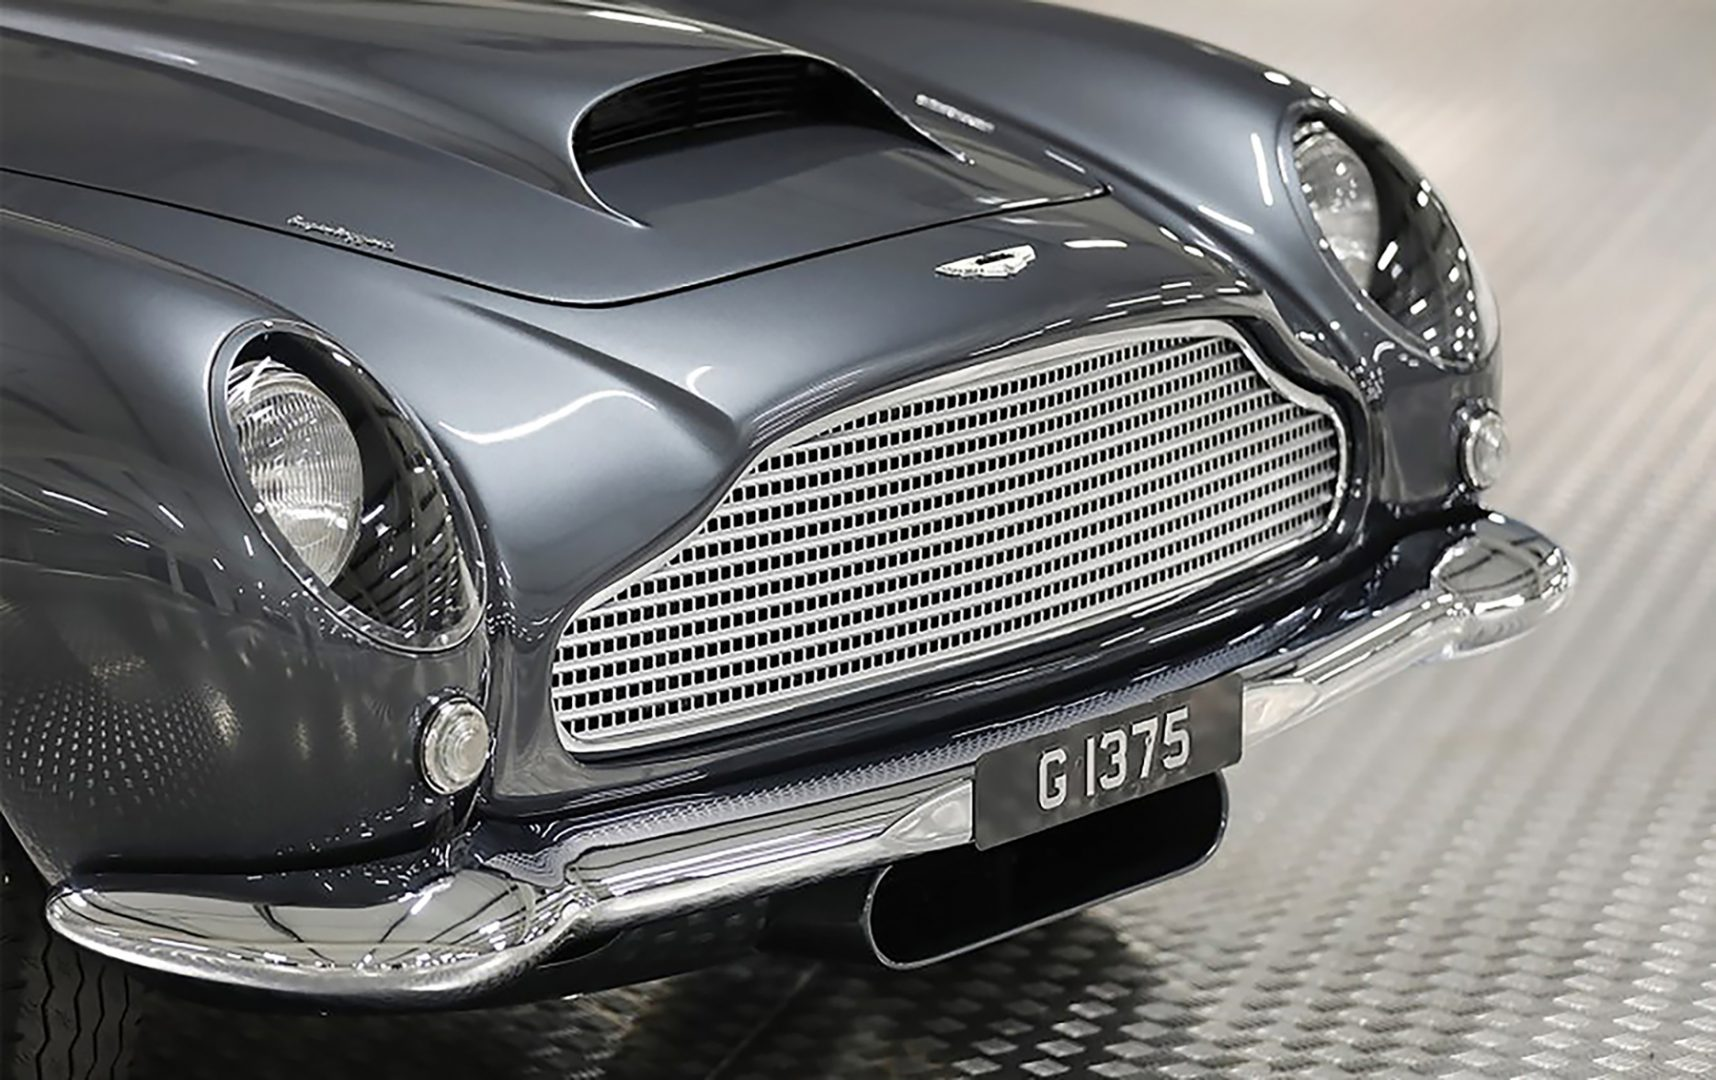 Silver 1961 Aston Martin DB4GT Front Grille, Aston Martin Financing, #pfs_leasing